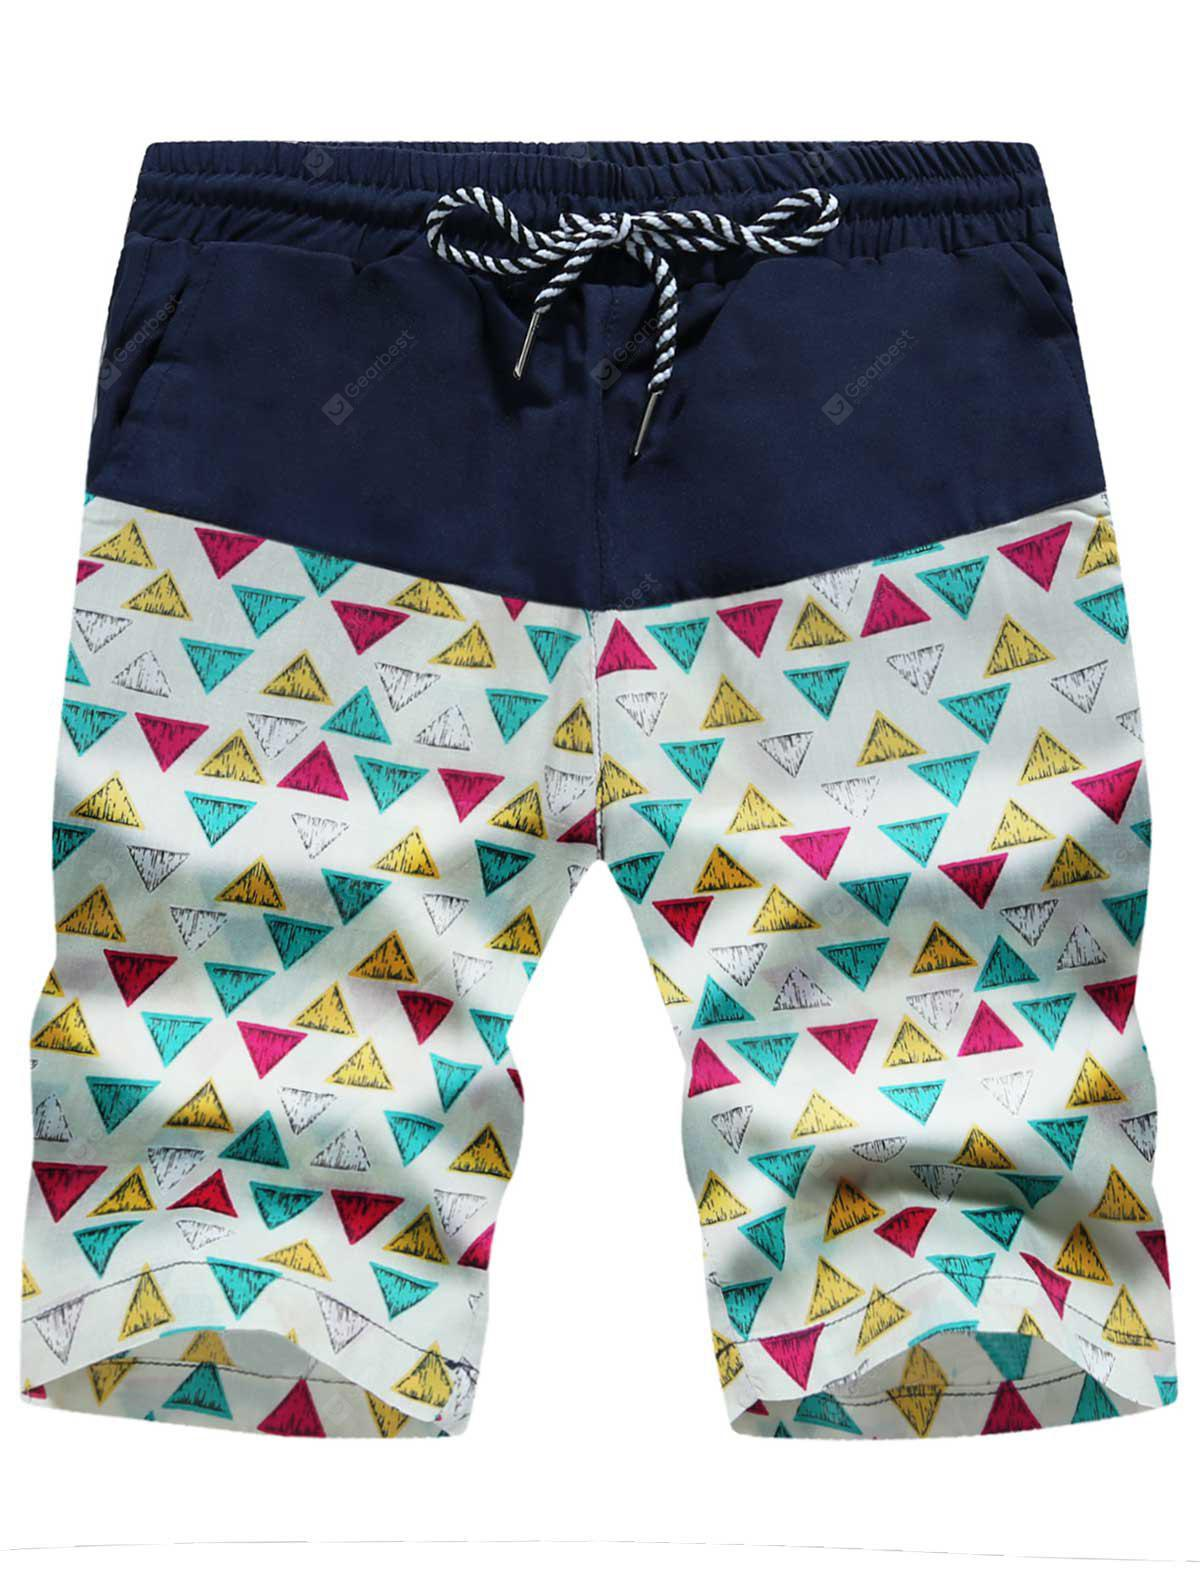 Drawstring Colorful Geometric Print Board Shorts